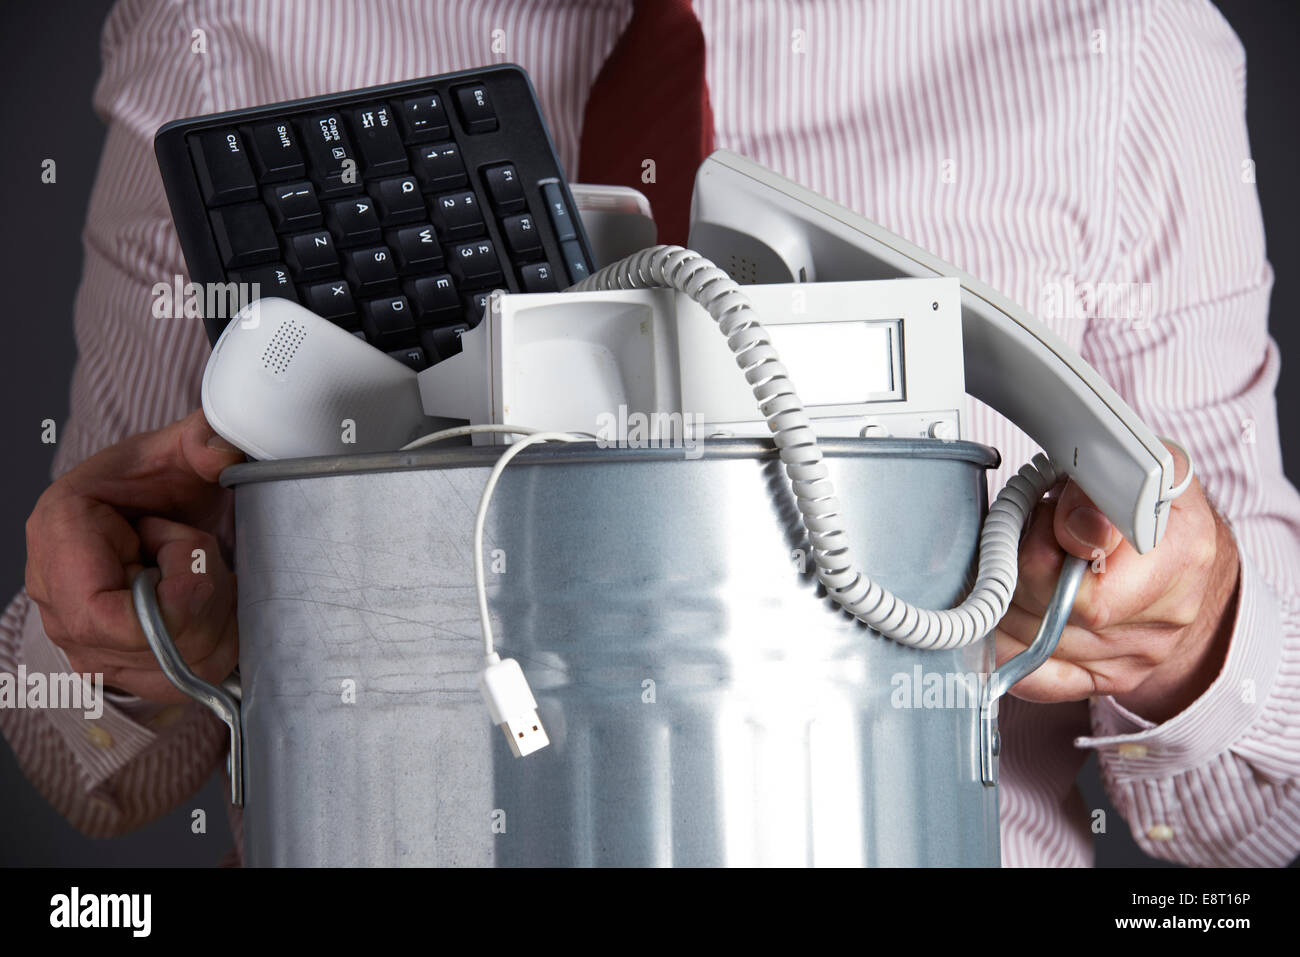 Businessman Holding Garbage Can With Obsolete Office Equipment - Stock Image